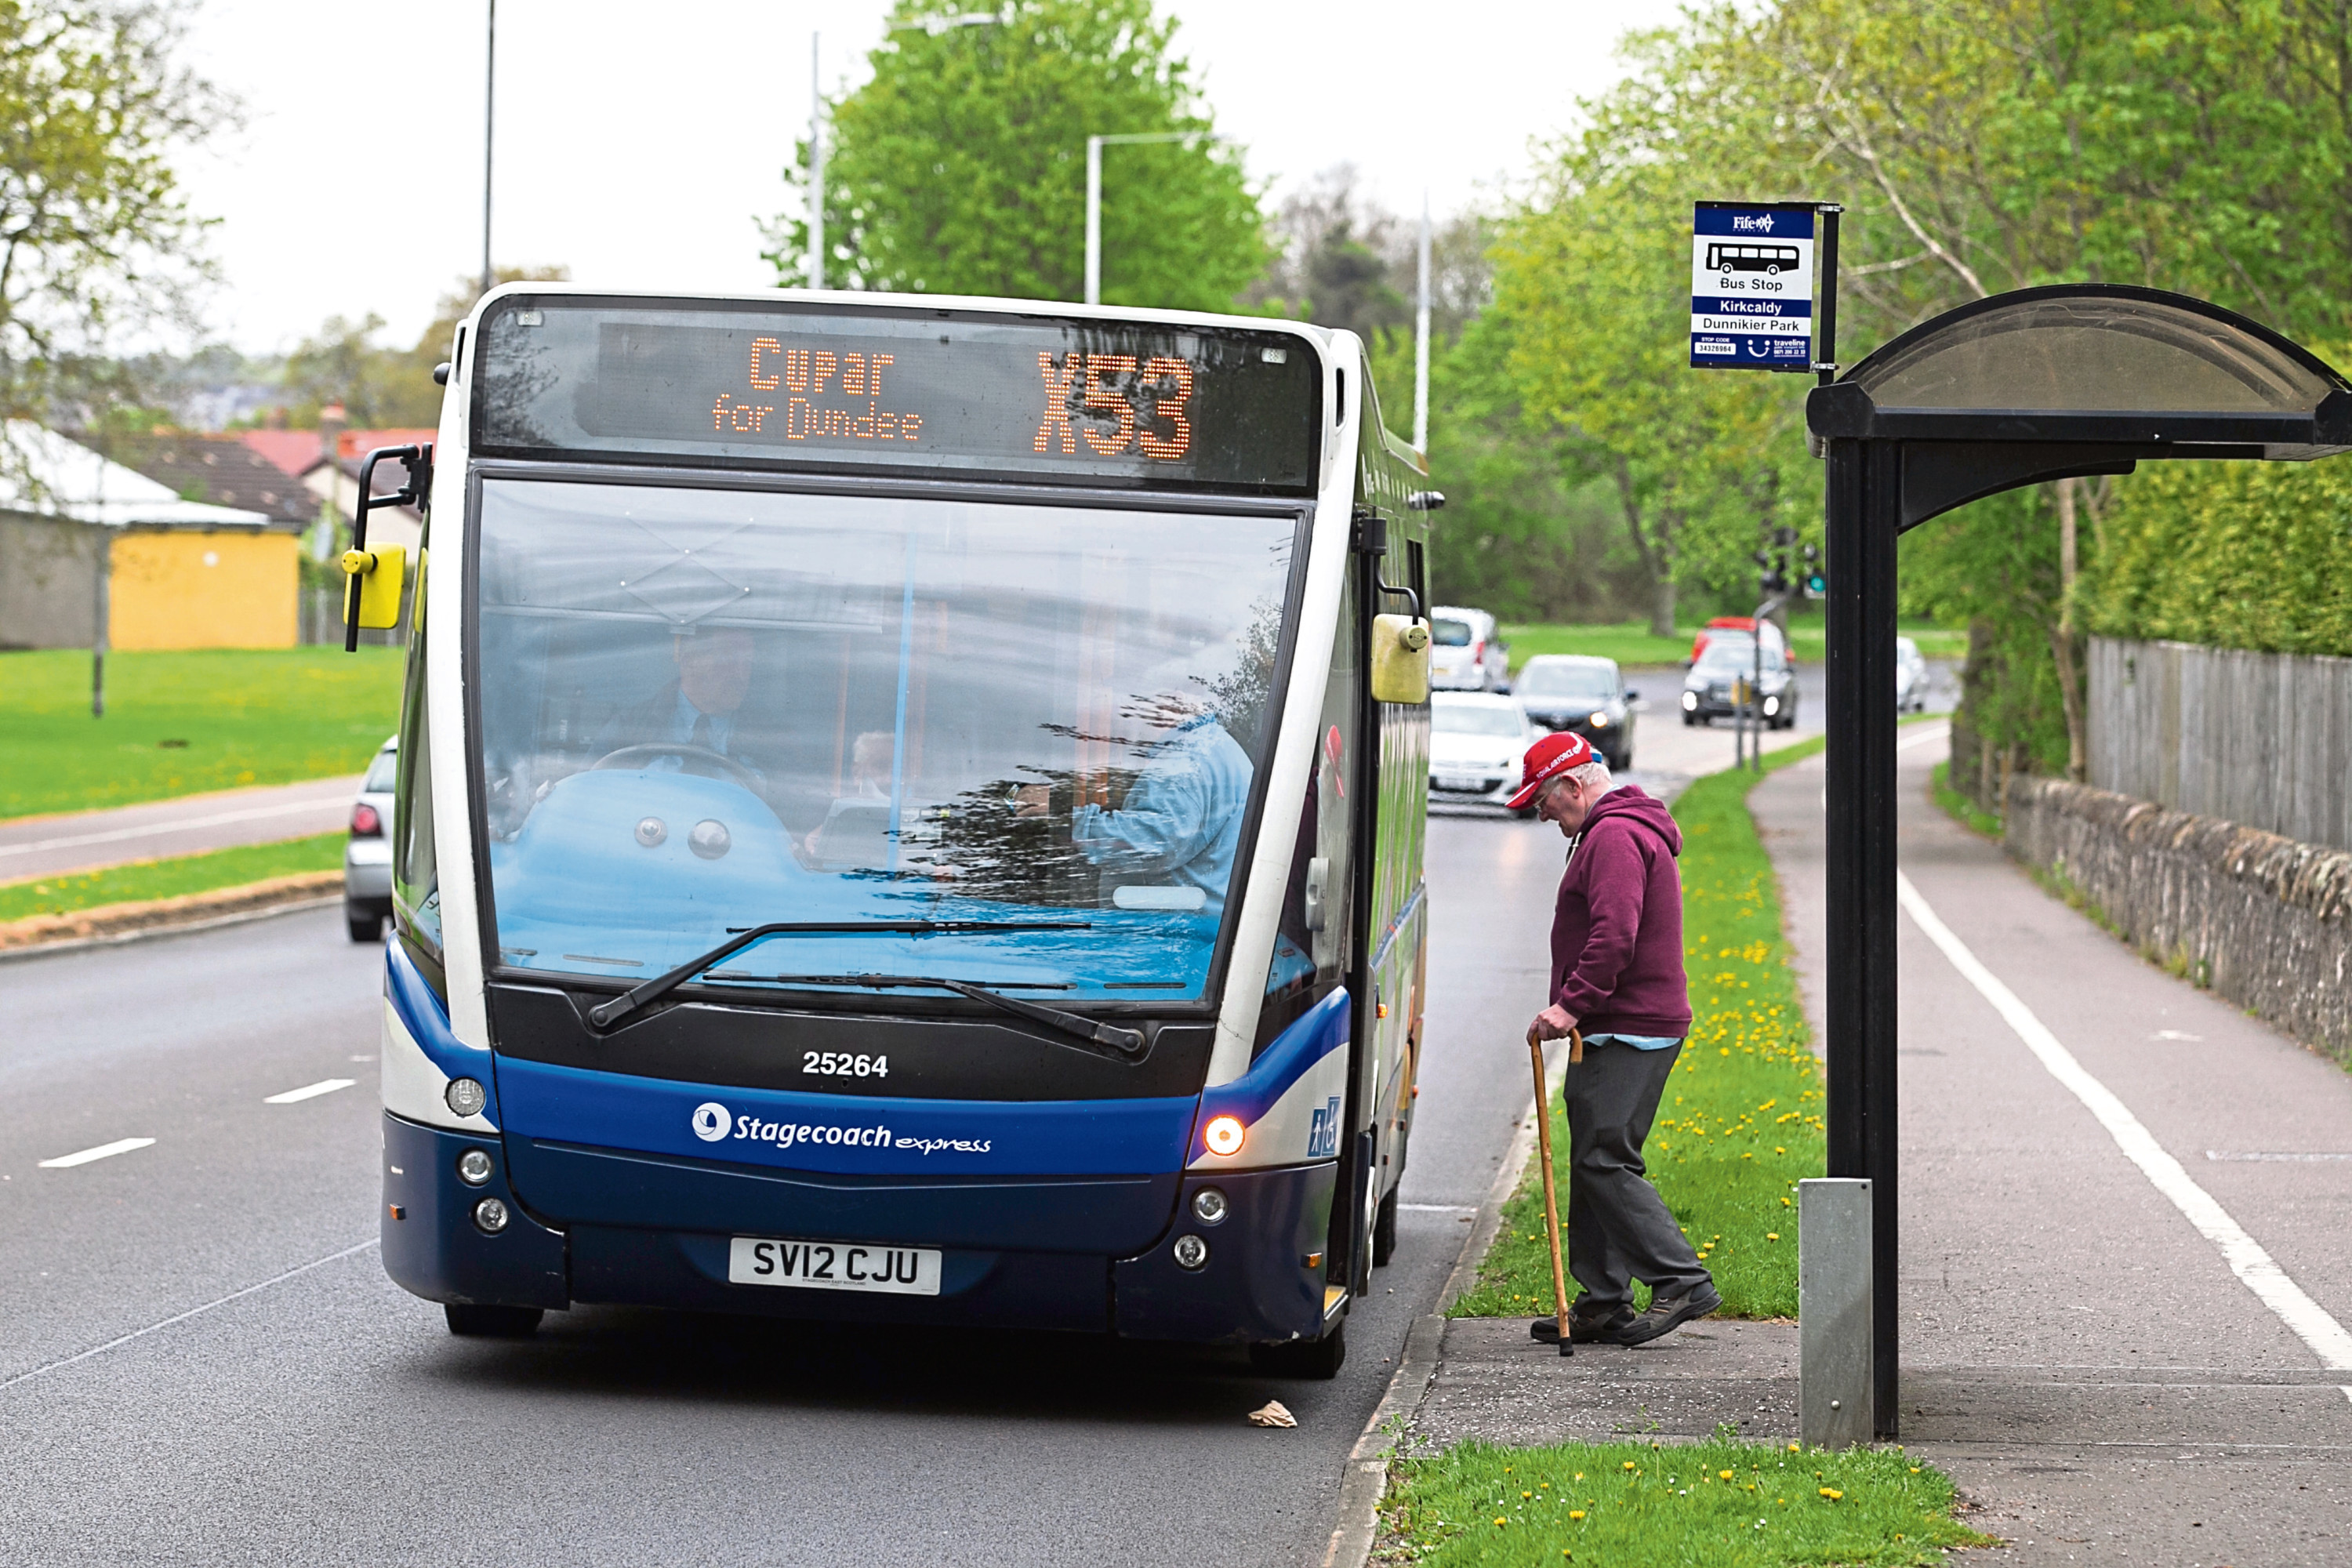 The X53 bus service in Kirkcaldy (Chris Austin / DC Thomson)